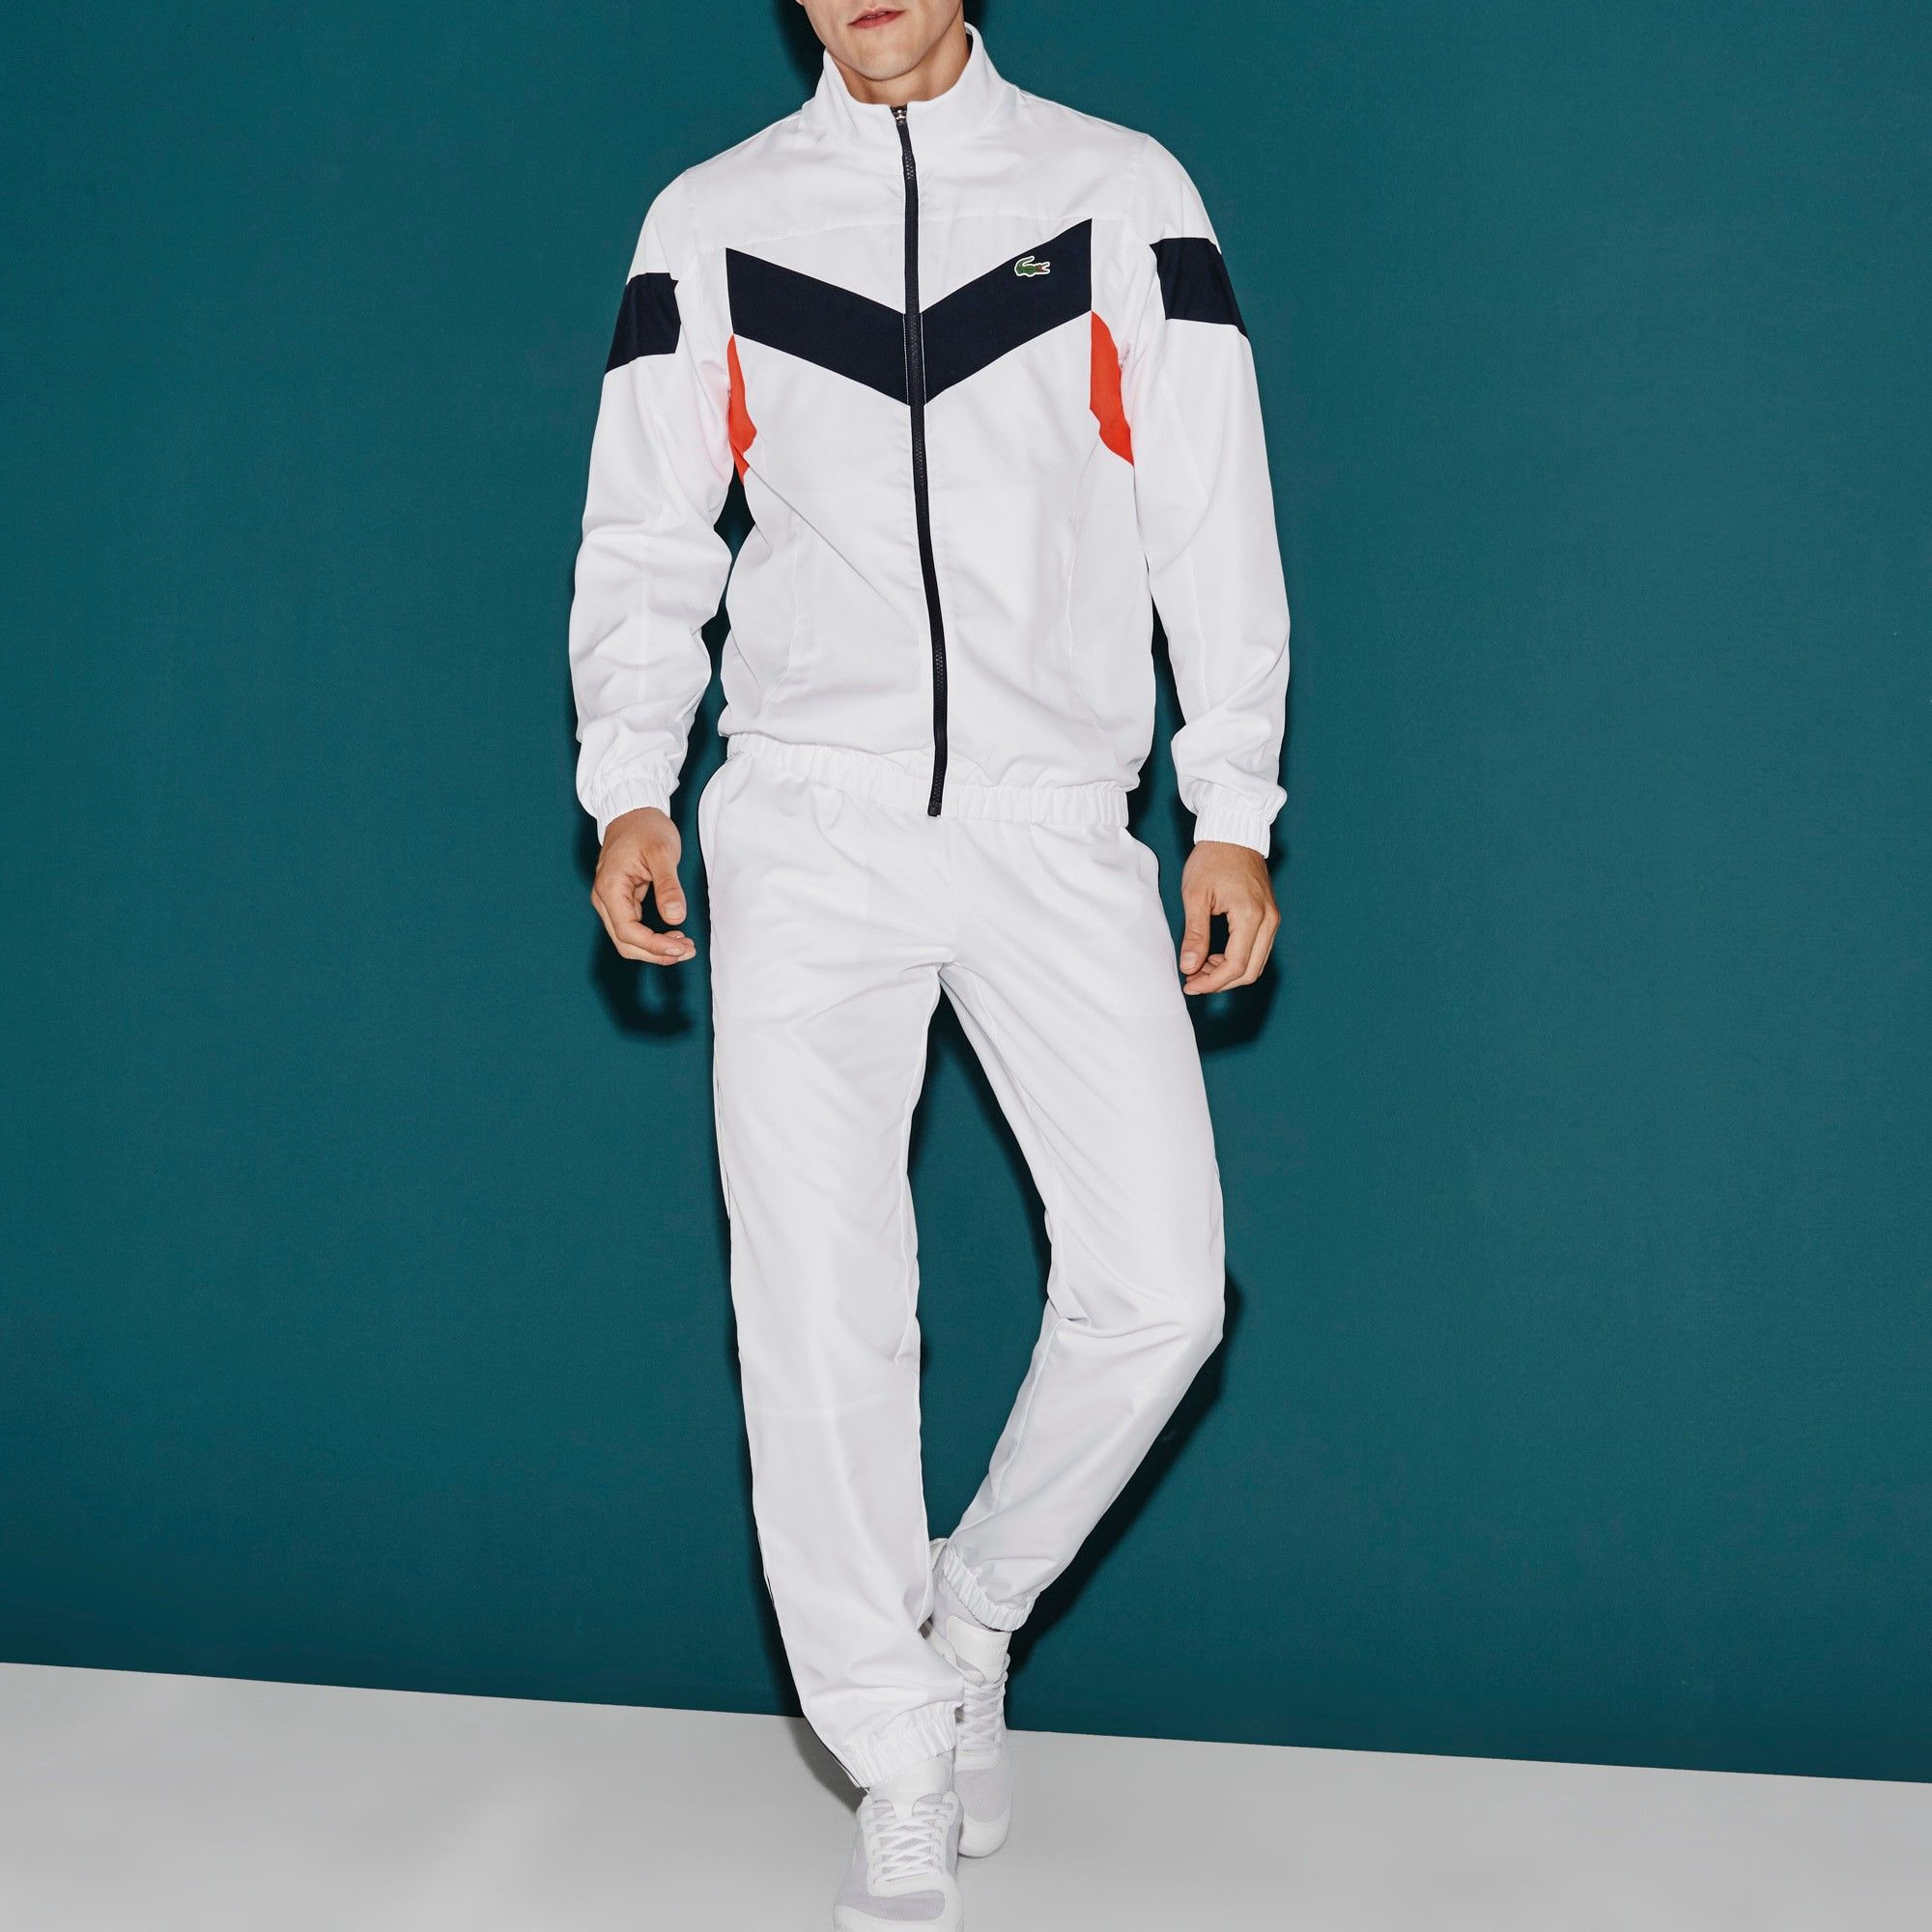 8e19d7892 LACOSTE Men s Lacoste SPORT Tennis Colorblock Tracksuit - white navy  blue-mexico re.  lacoste  cloth